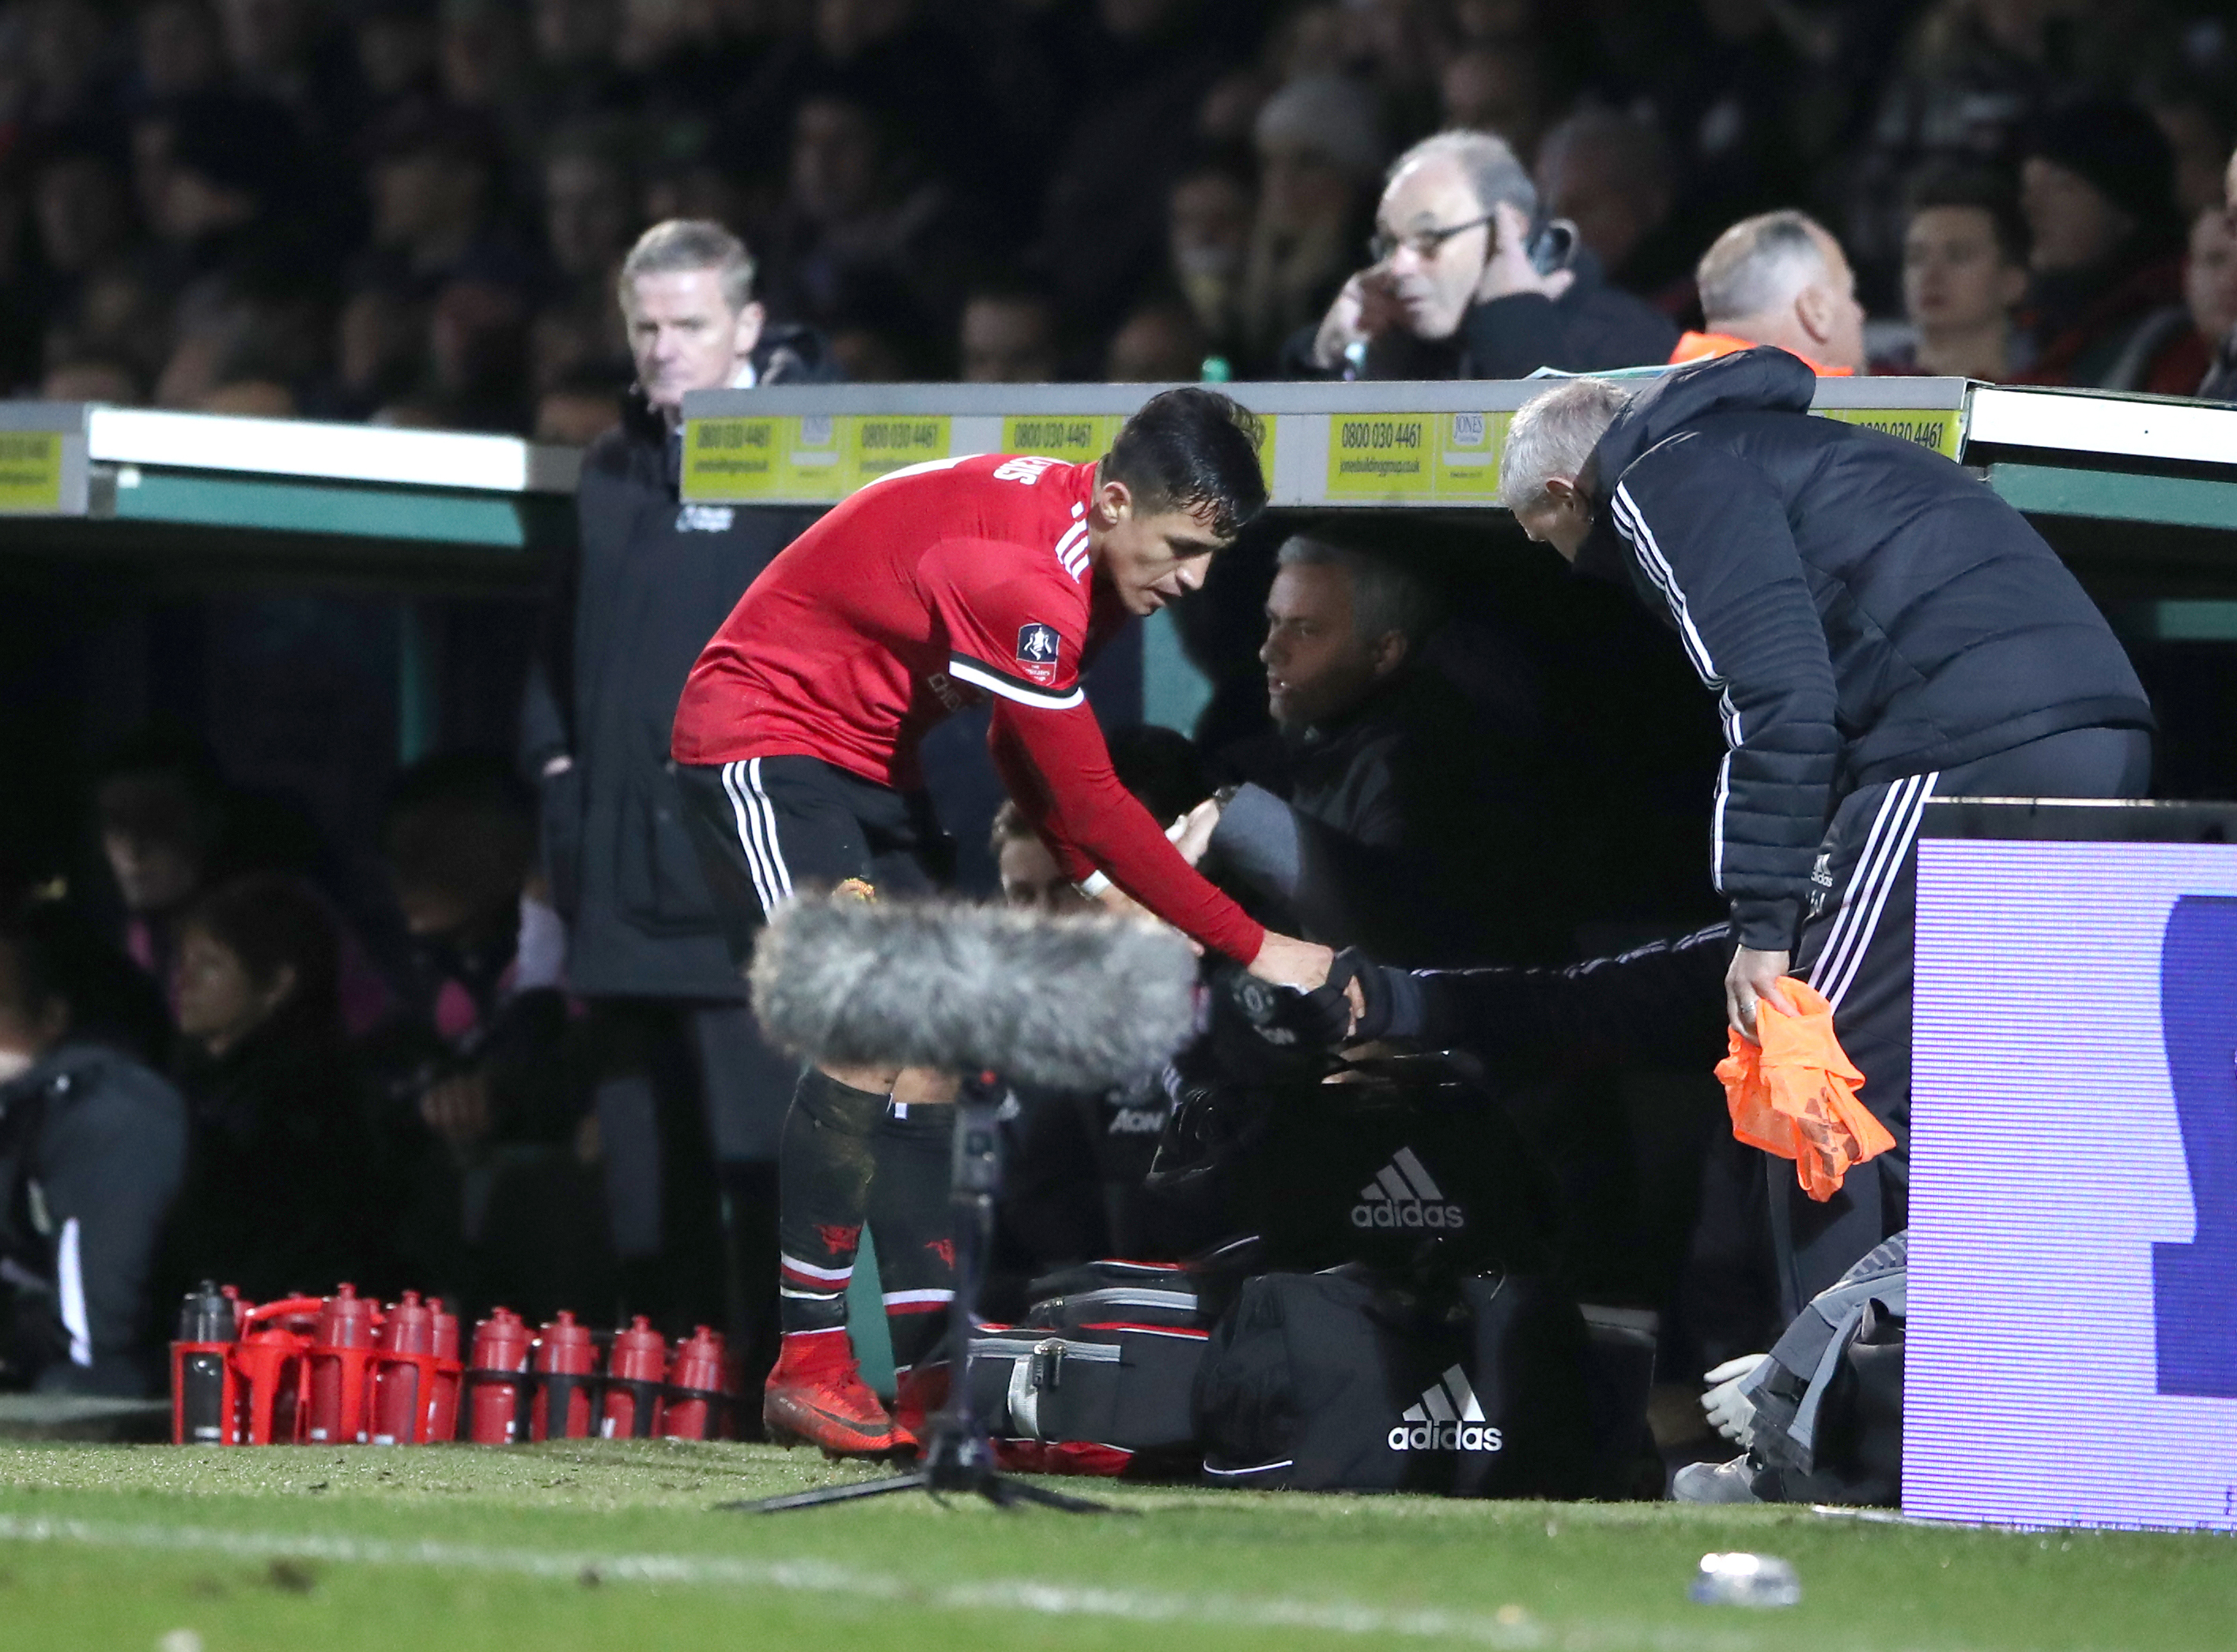 Alexis Sanchez joins Jose Mourinho in the Manchester United dugout after being substituted on his debut in the FA Cup tie against Yeovil Town (PA)